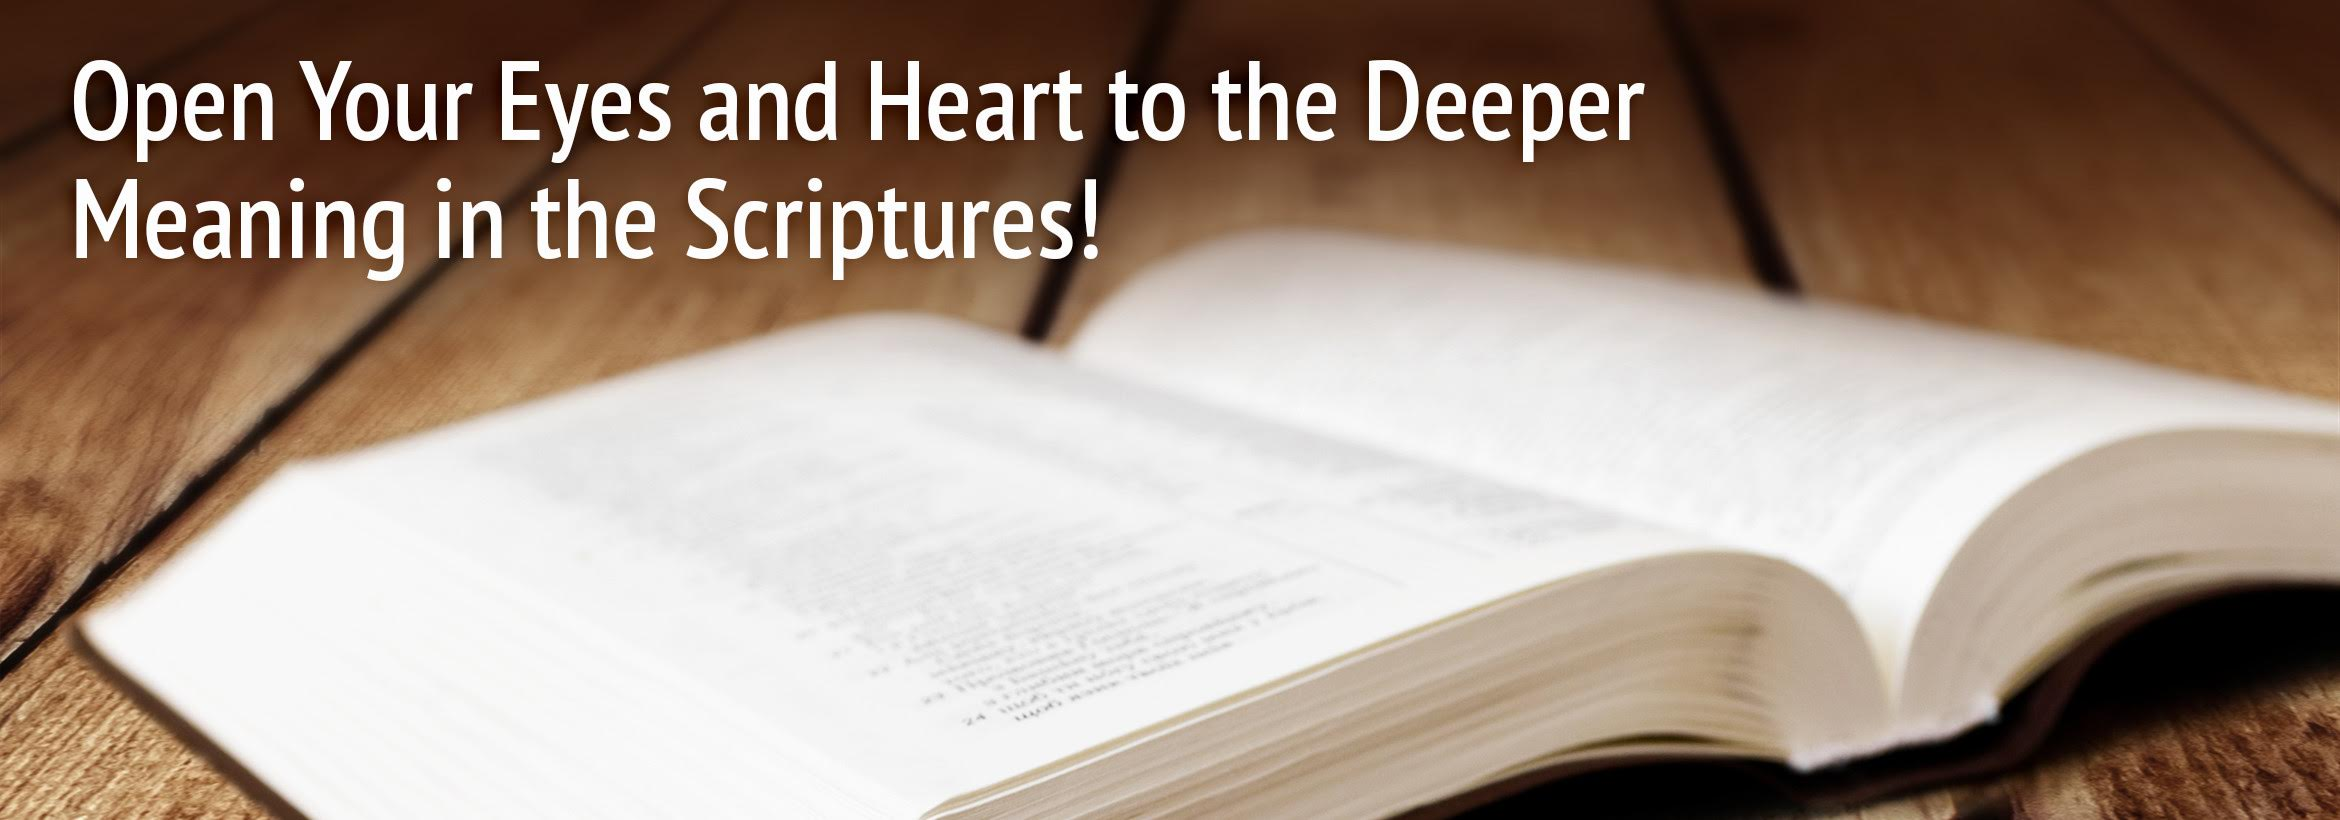 Free Courses from Our Daily Bread Christian University. Open Your Eyes and Heart to the Deeper Meaning in the Scriptures!